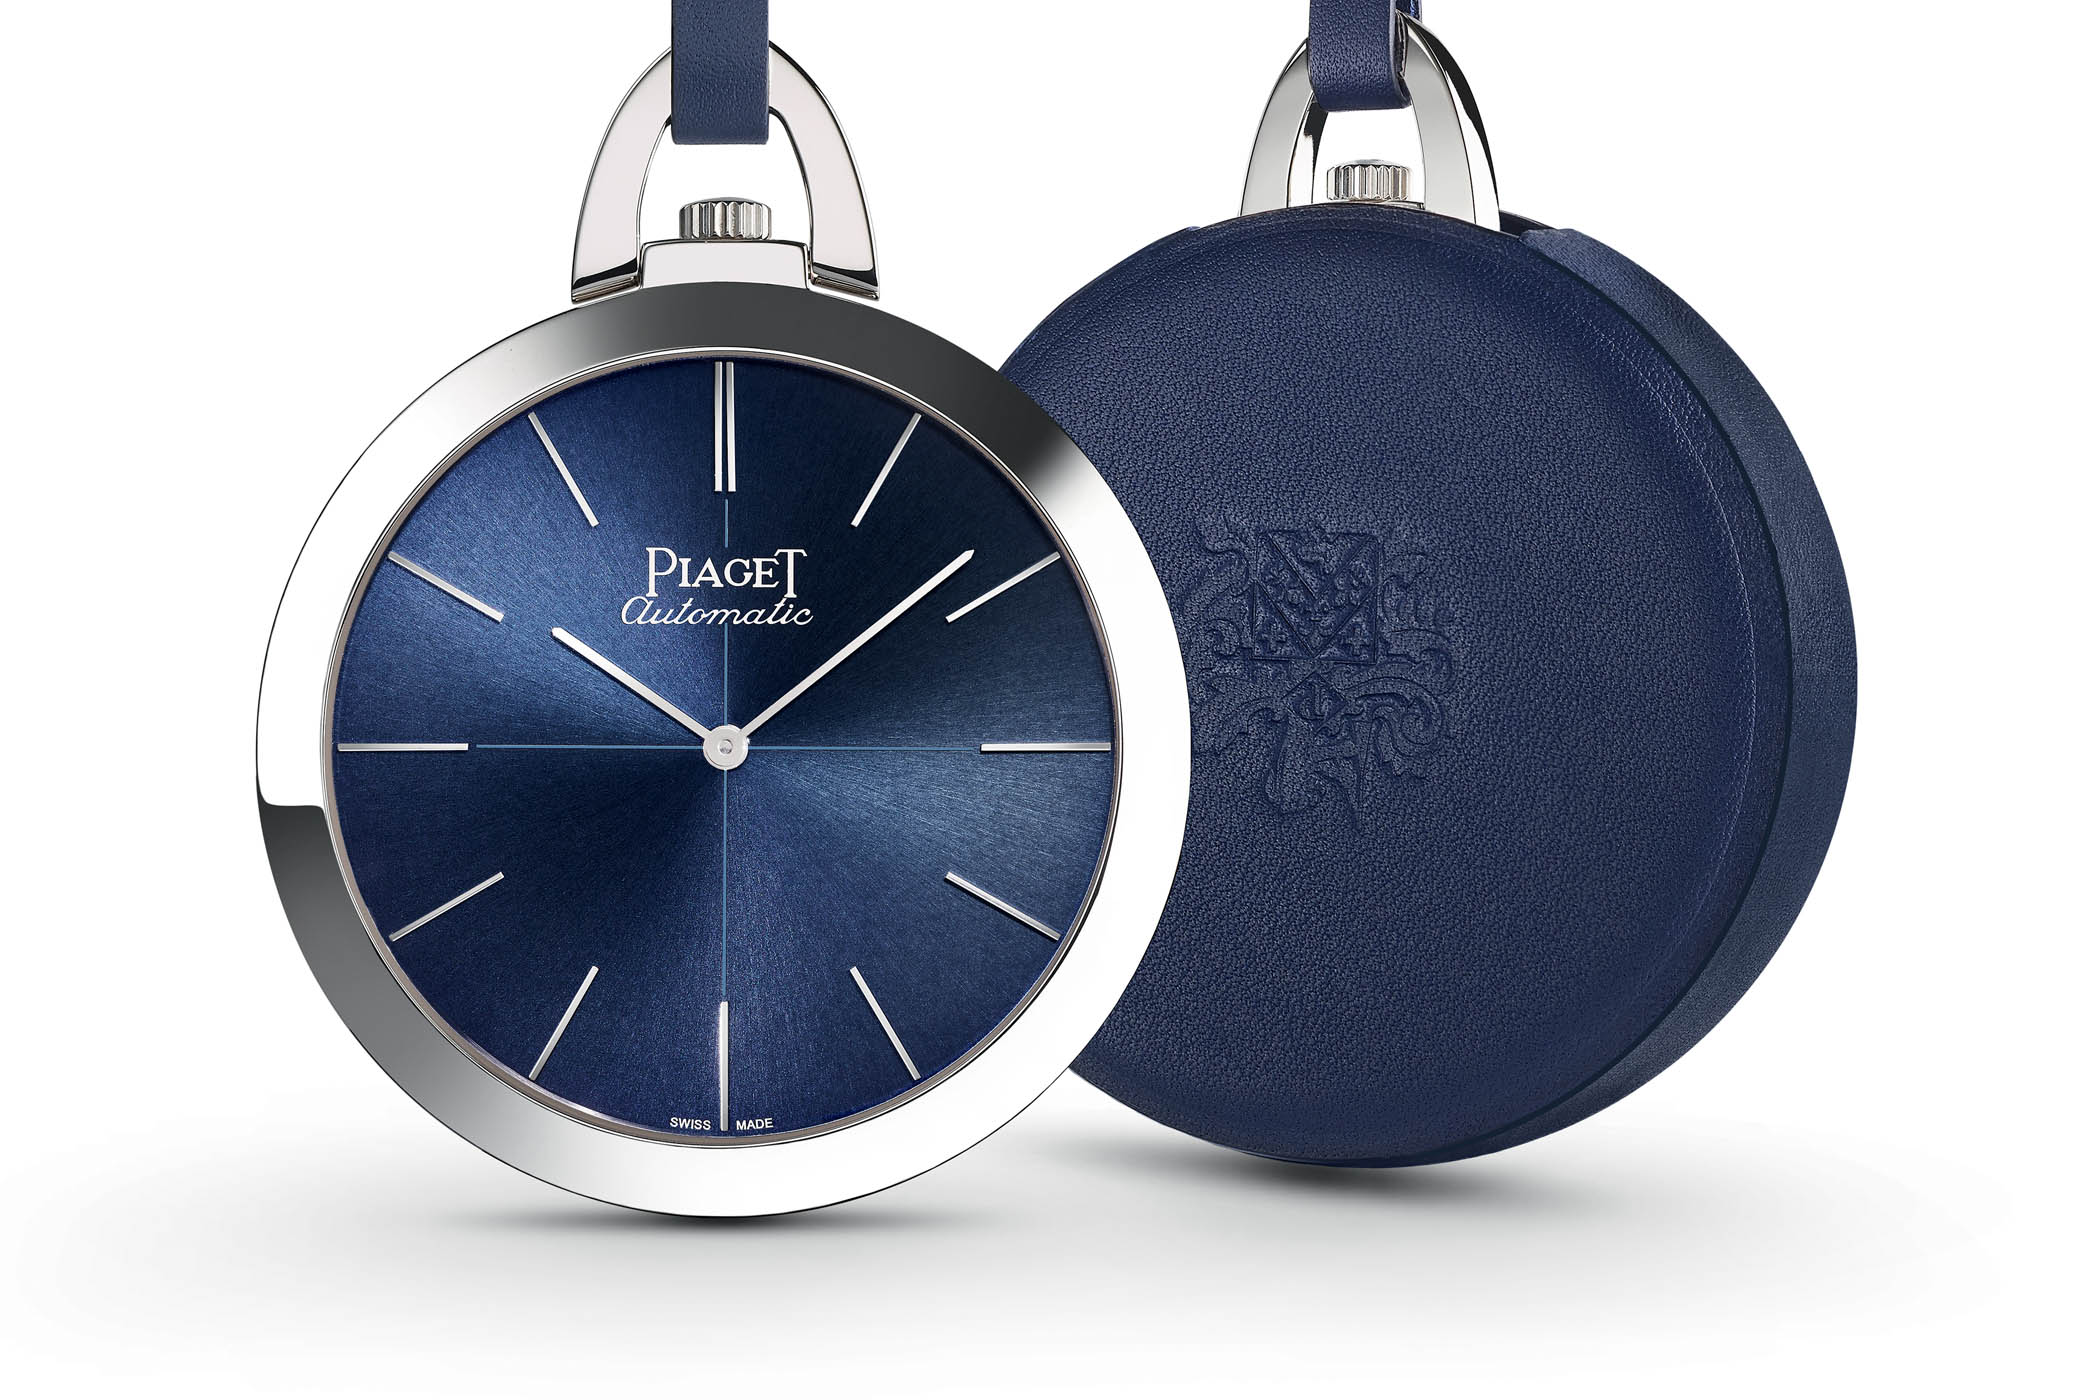 piaget altiplano 60th anniversary pocket watch